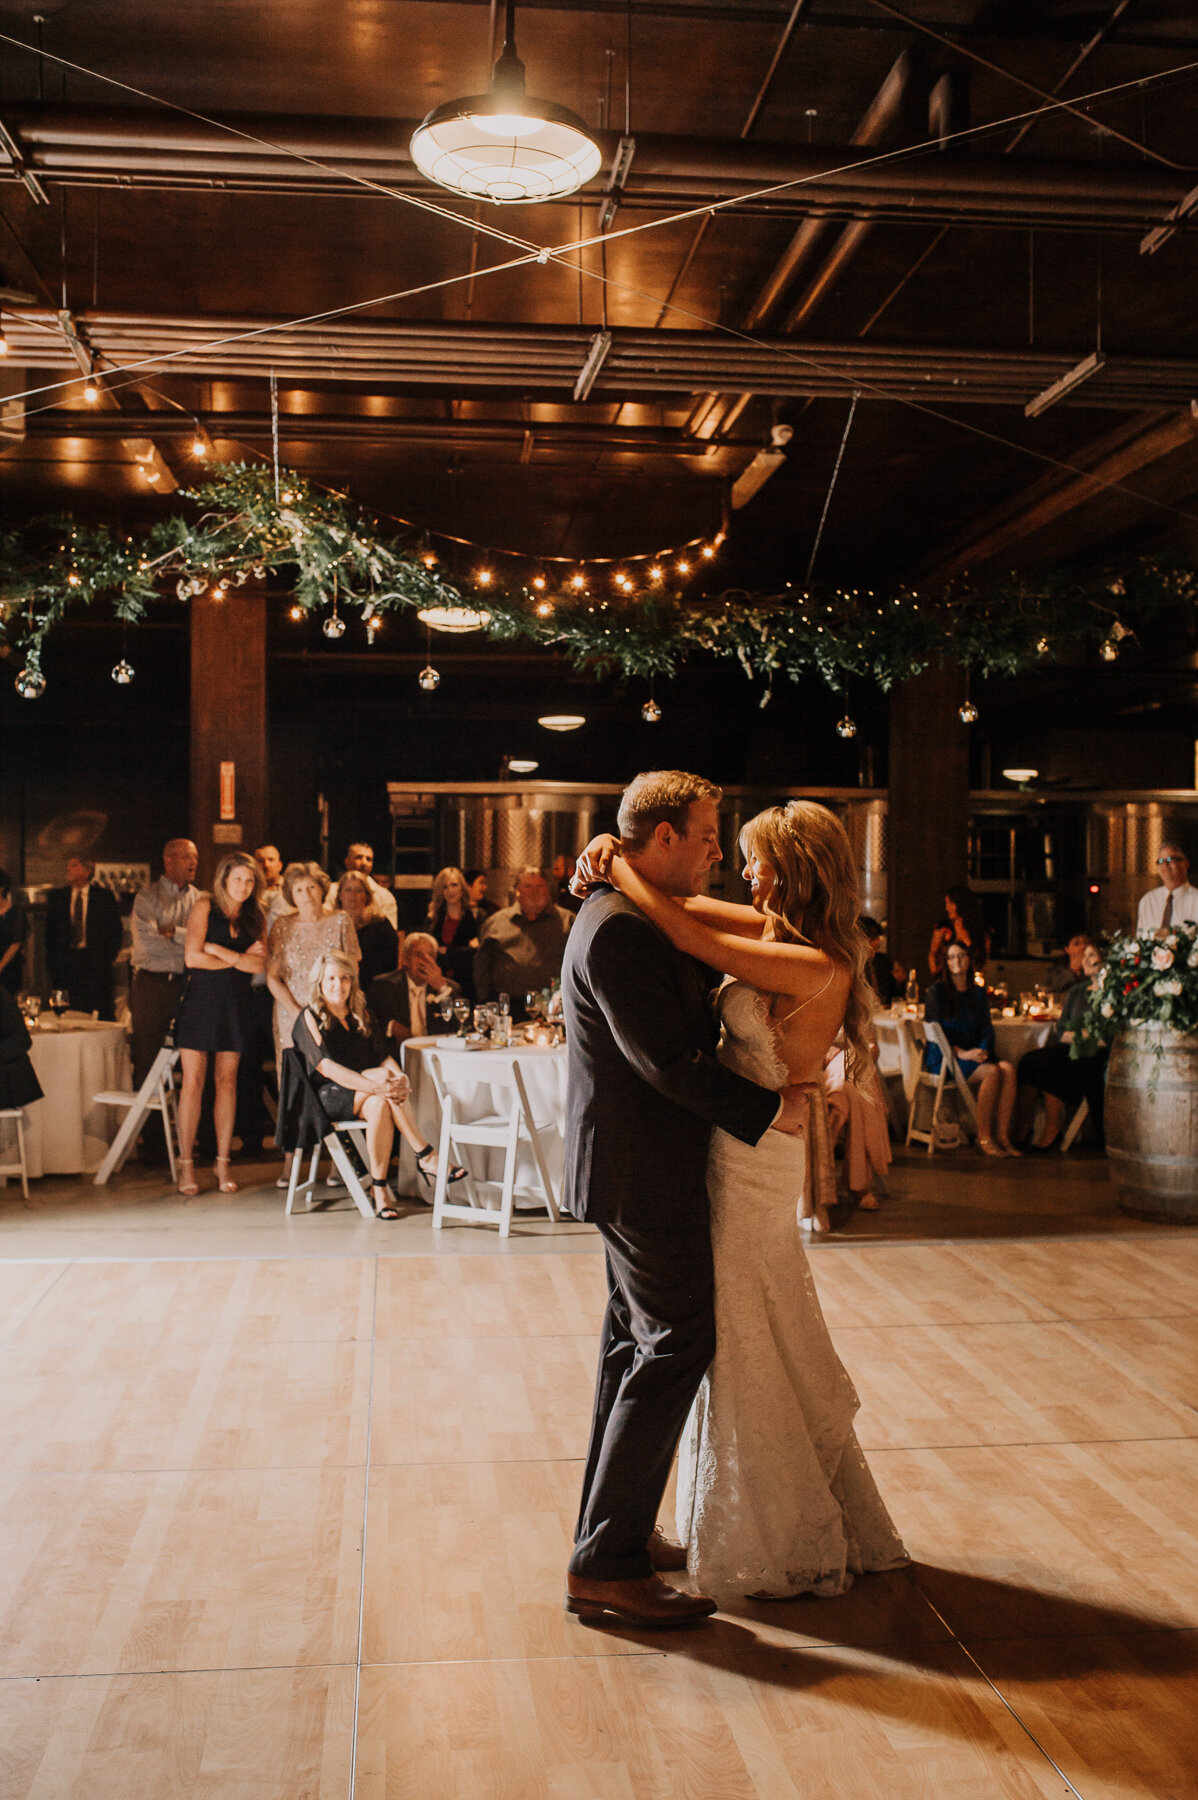 1132Swiftwater Cellars Wedding_Cle Elum Wedding_Montana Wedding Photographer_Kat & Kyle_September 15, 2018-348.jpg